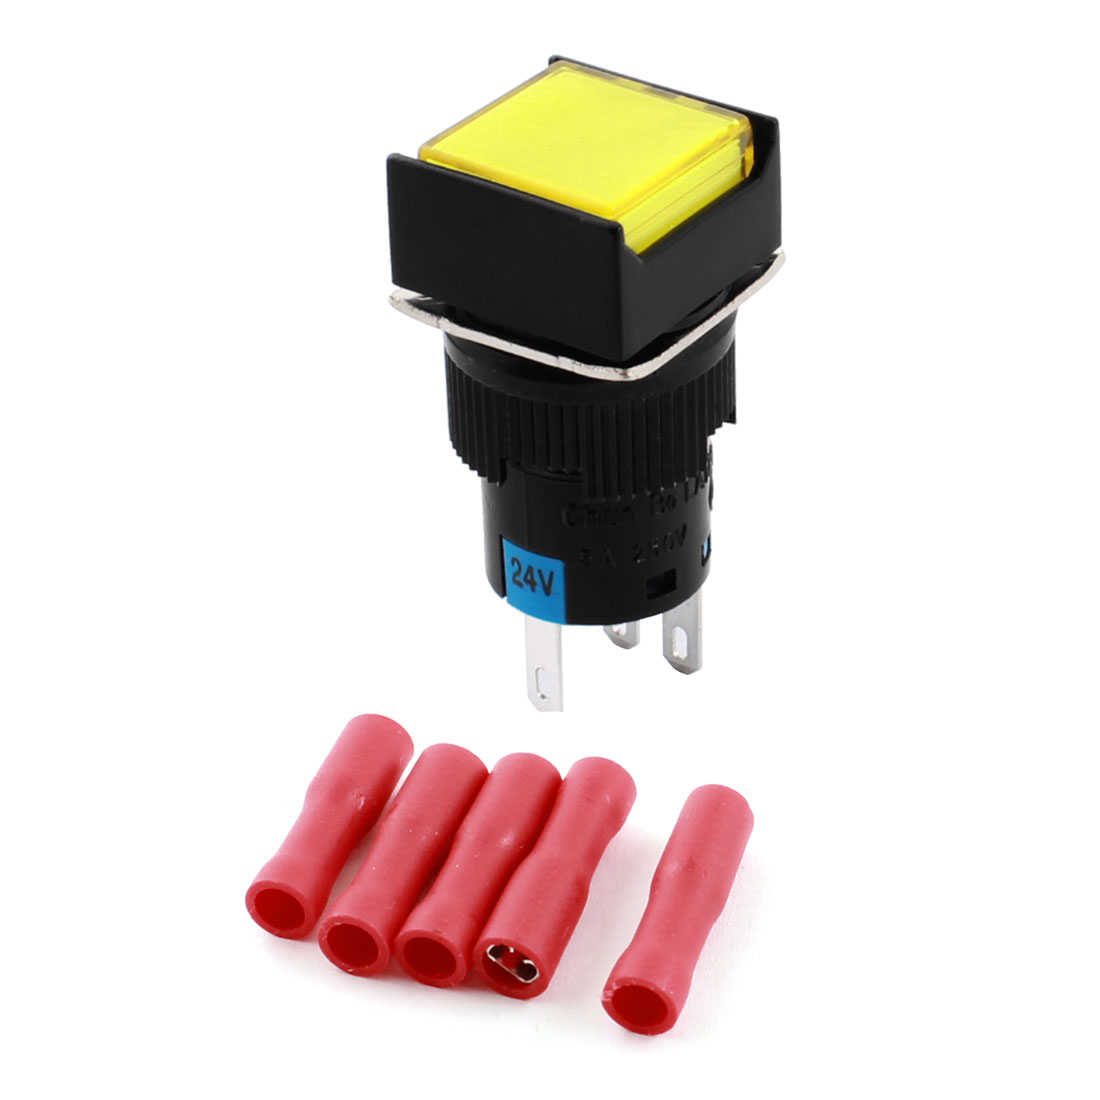 DC24V Yellow Pilot Light 5Pins 16mm Threaded Panel Mounted SPDT Momentary Rectangle Head Pushbutton Switch w Crimp Terminals